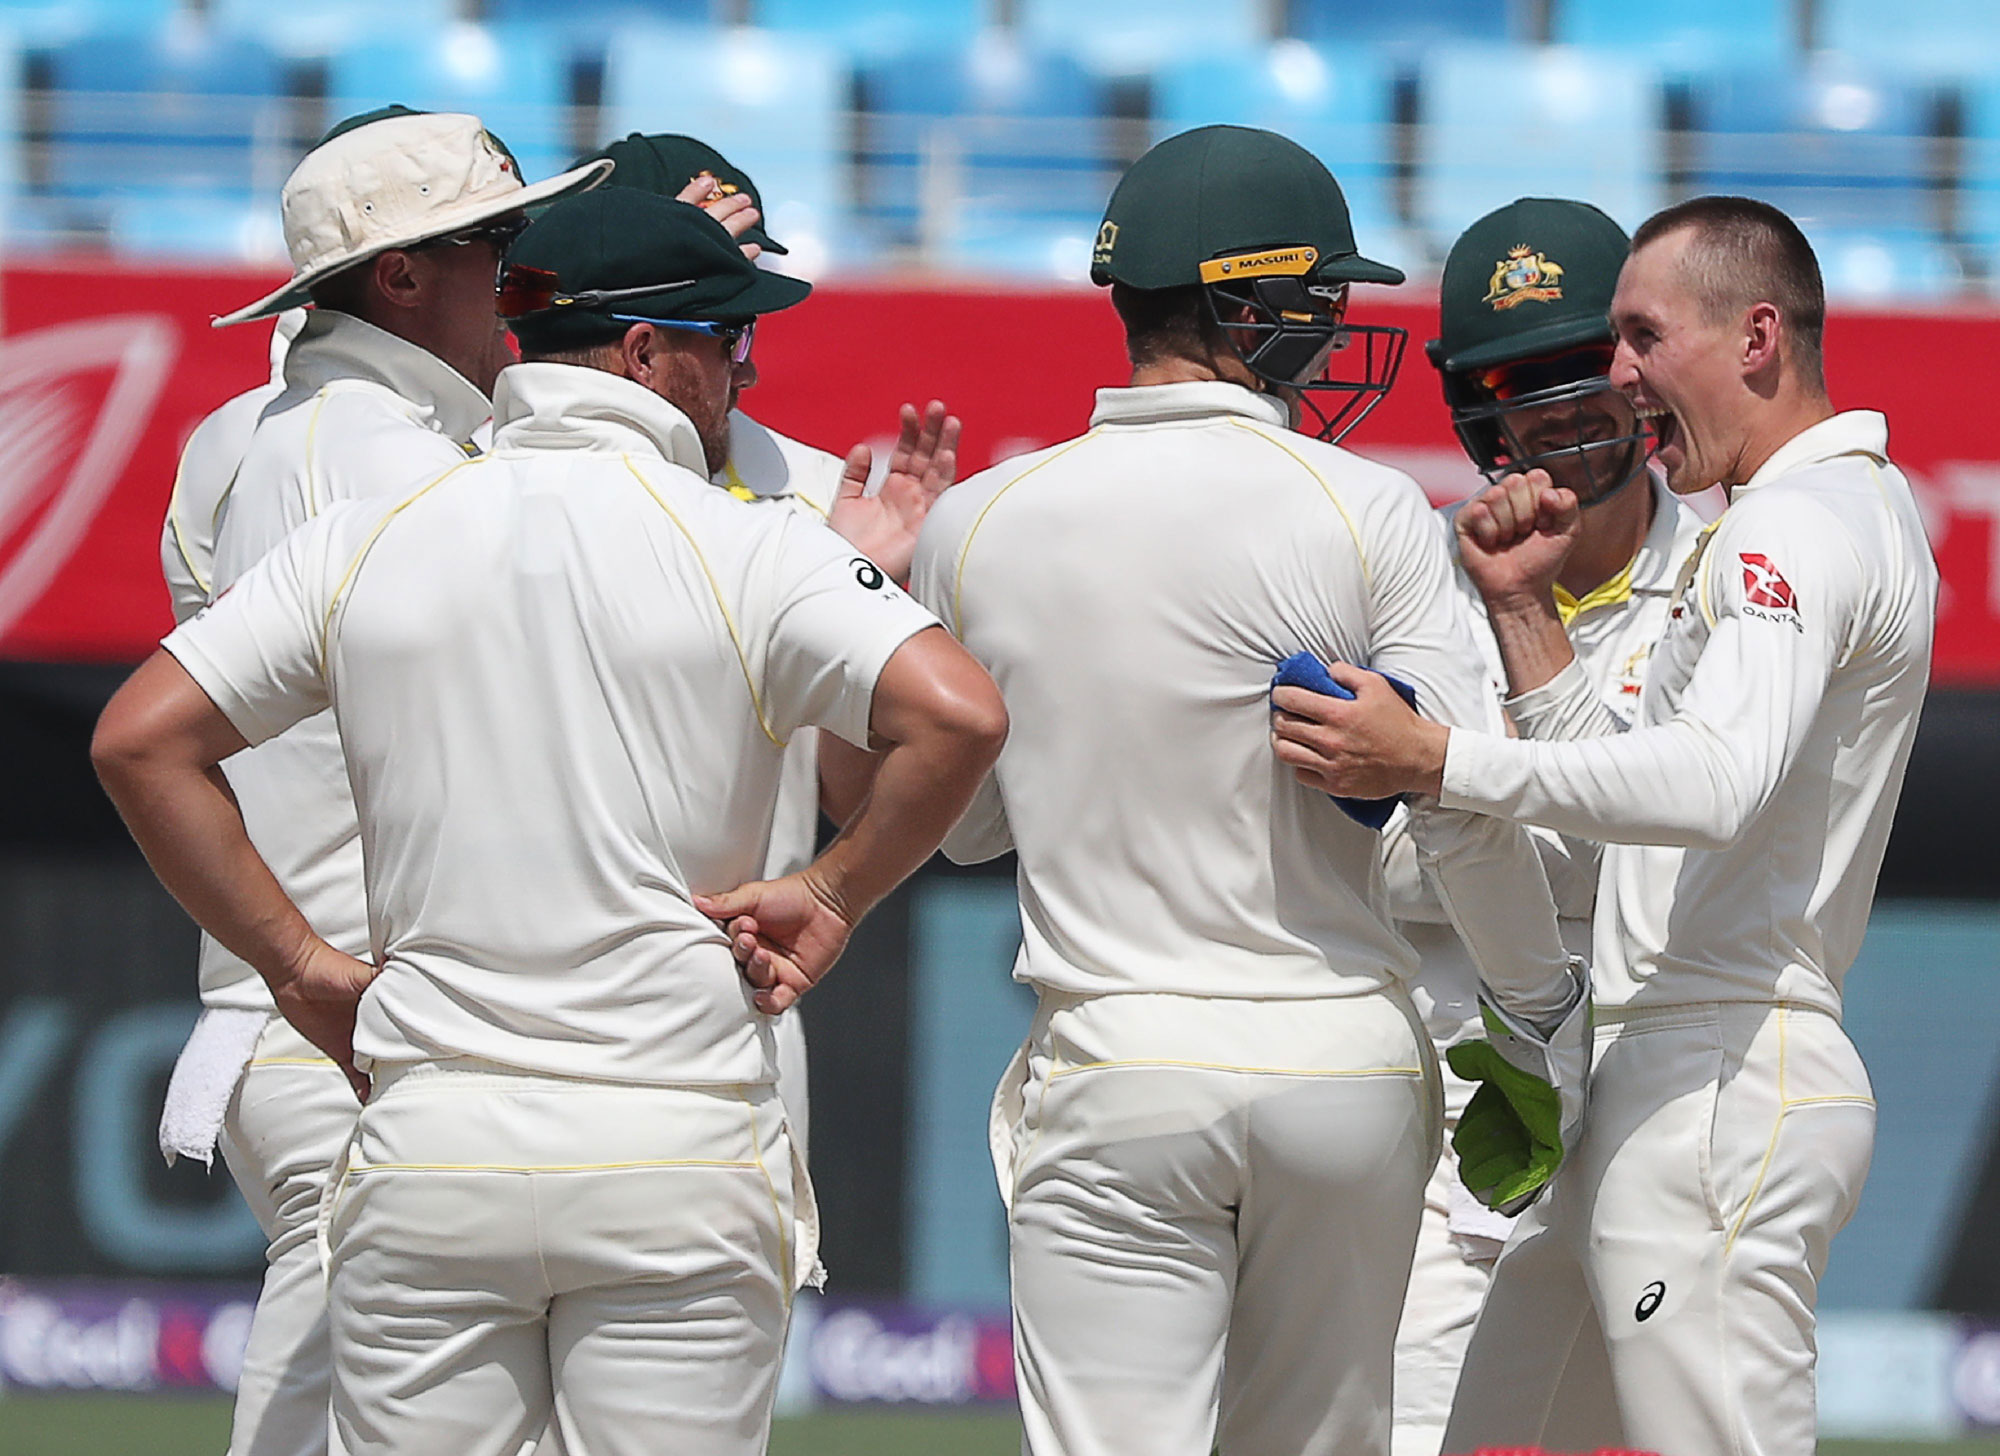 1.	Australian cricketer Marnus Labuschagne (R) celebrates after taking the wicket of Pakistan  cricketer Haris Sohail during day four of the first Test cricket match in the series between Australia and Pakistan at the Dubai International Stadium in Dubai